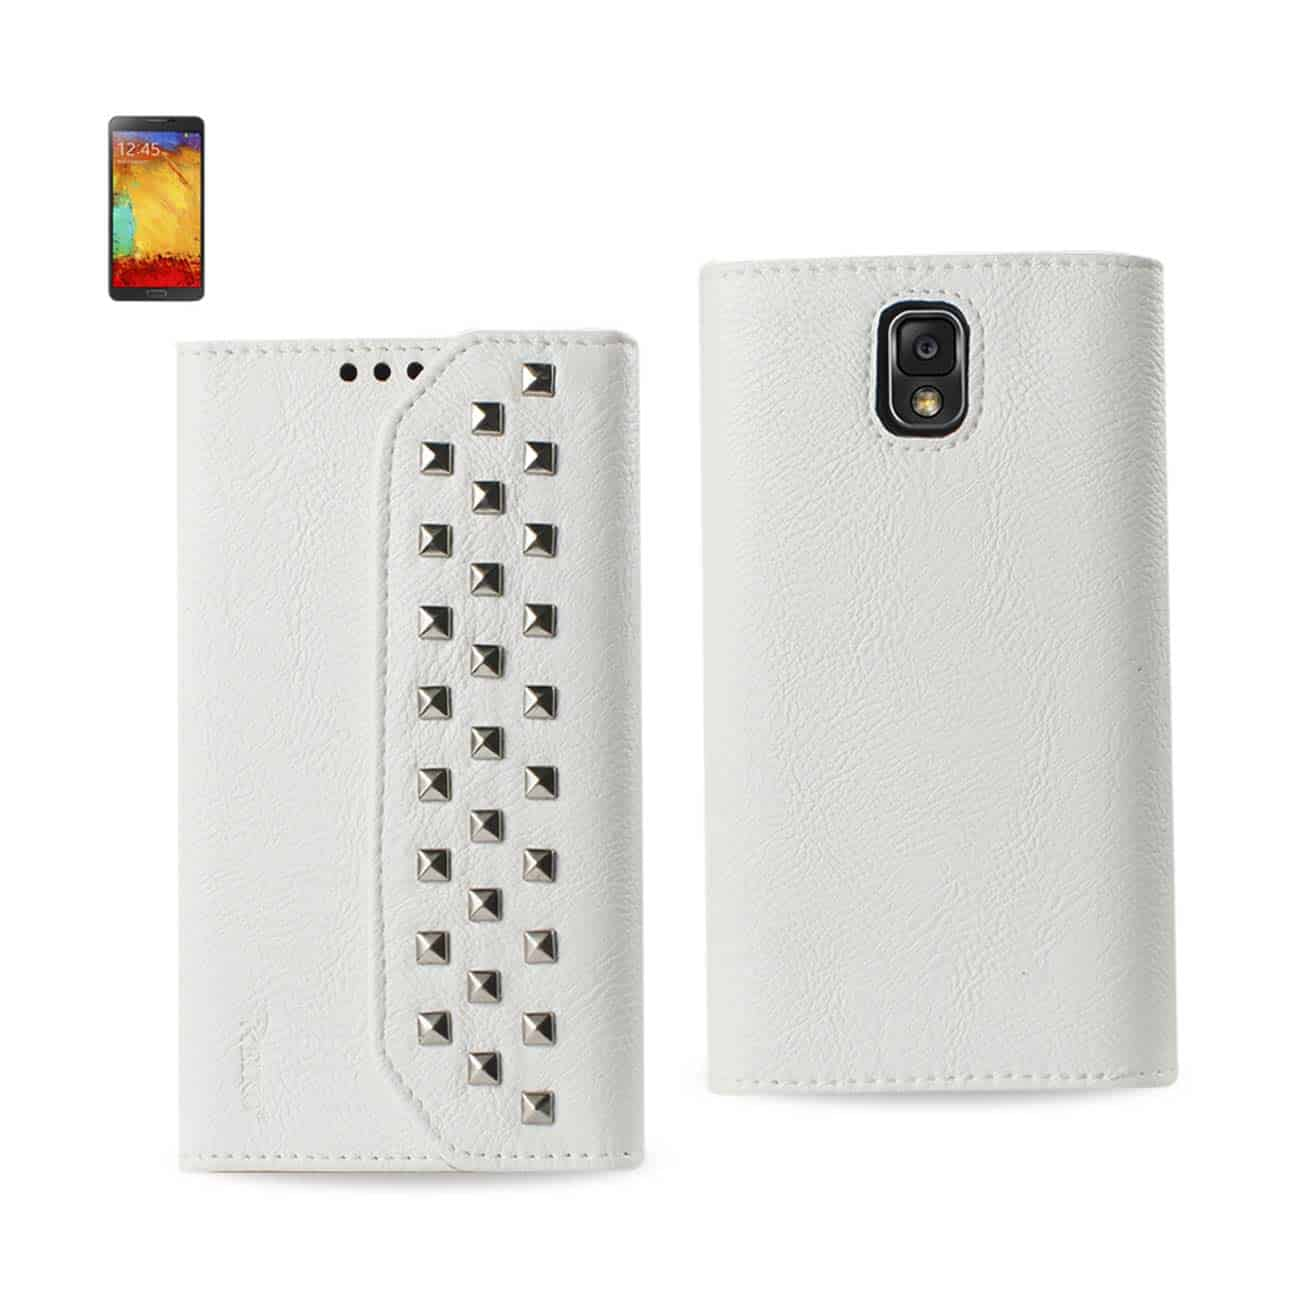 SAMSUNG GALAXY NOTE 3 STUDS WALLET CASE IN WHITE